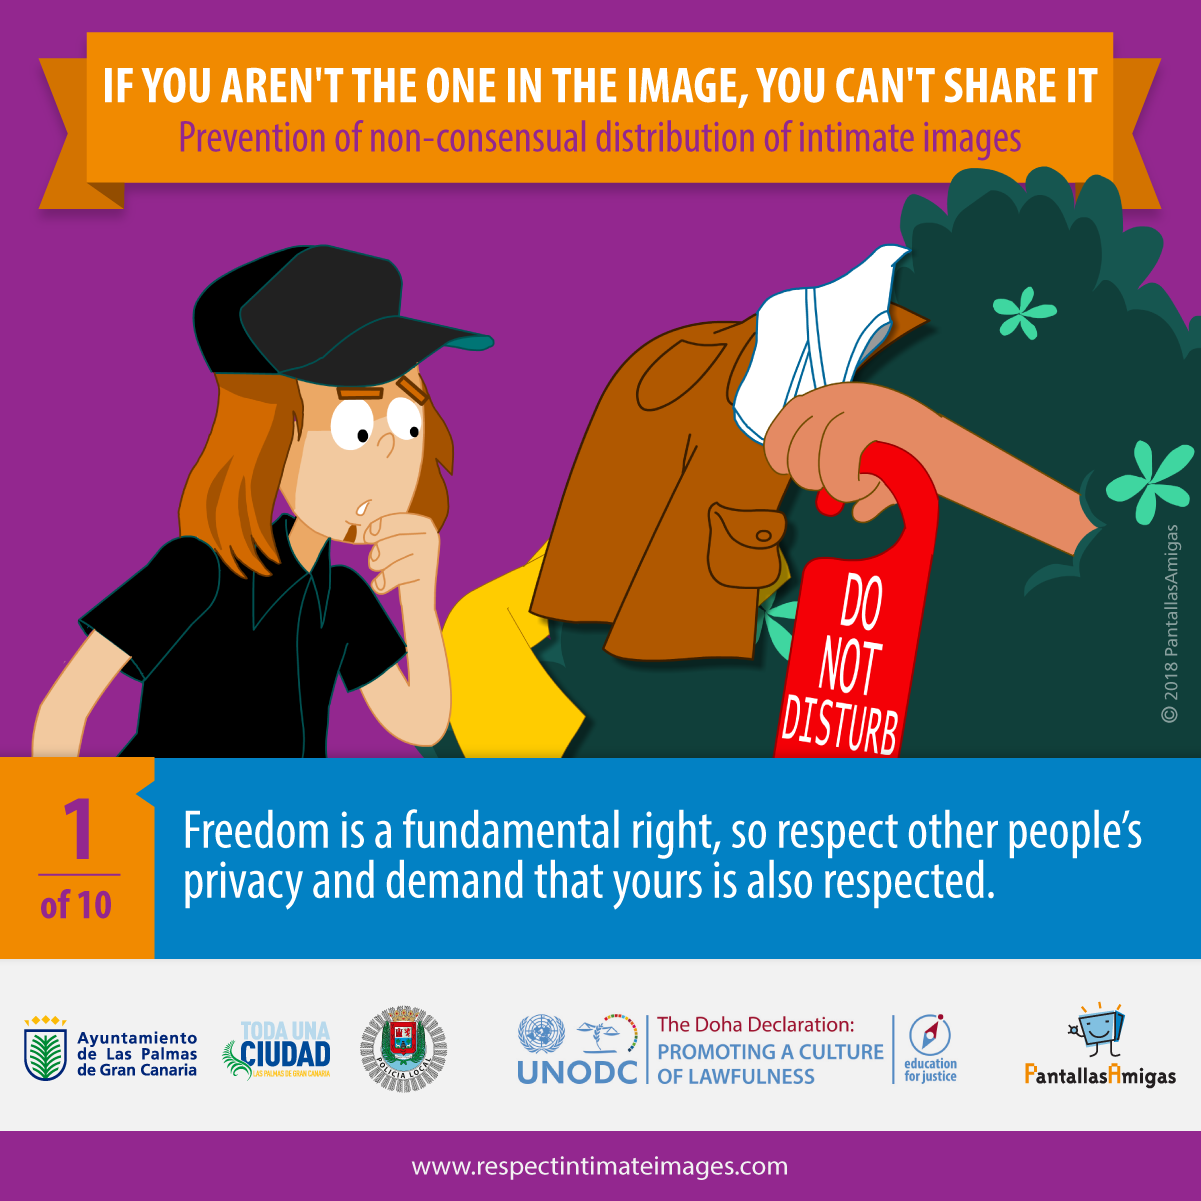 Freedom is a fundamental right, so respect other people's privacy and demand that yours is also respected.